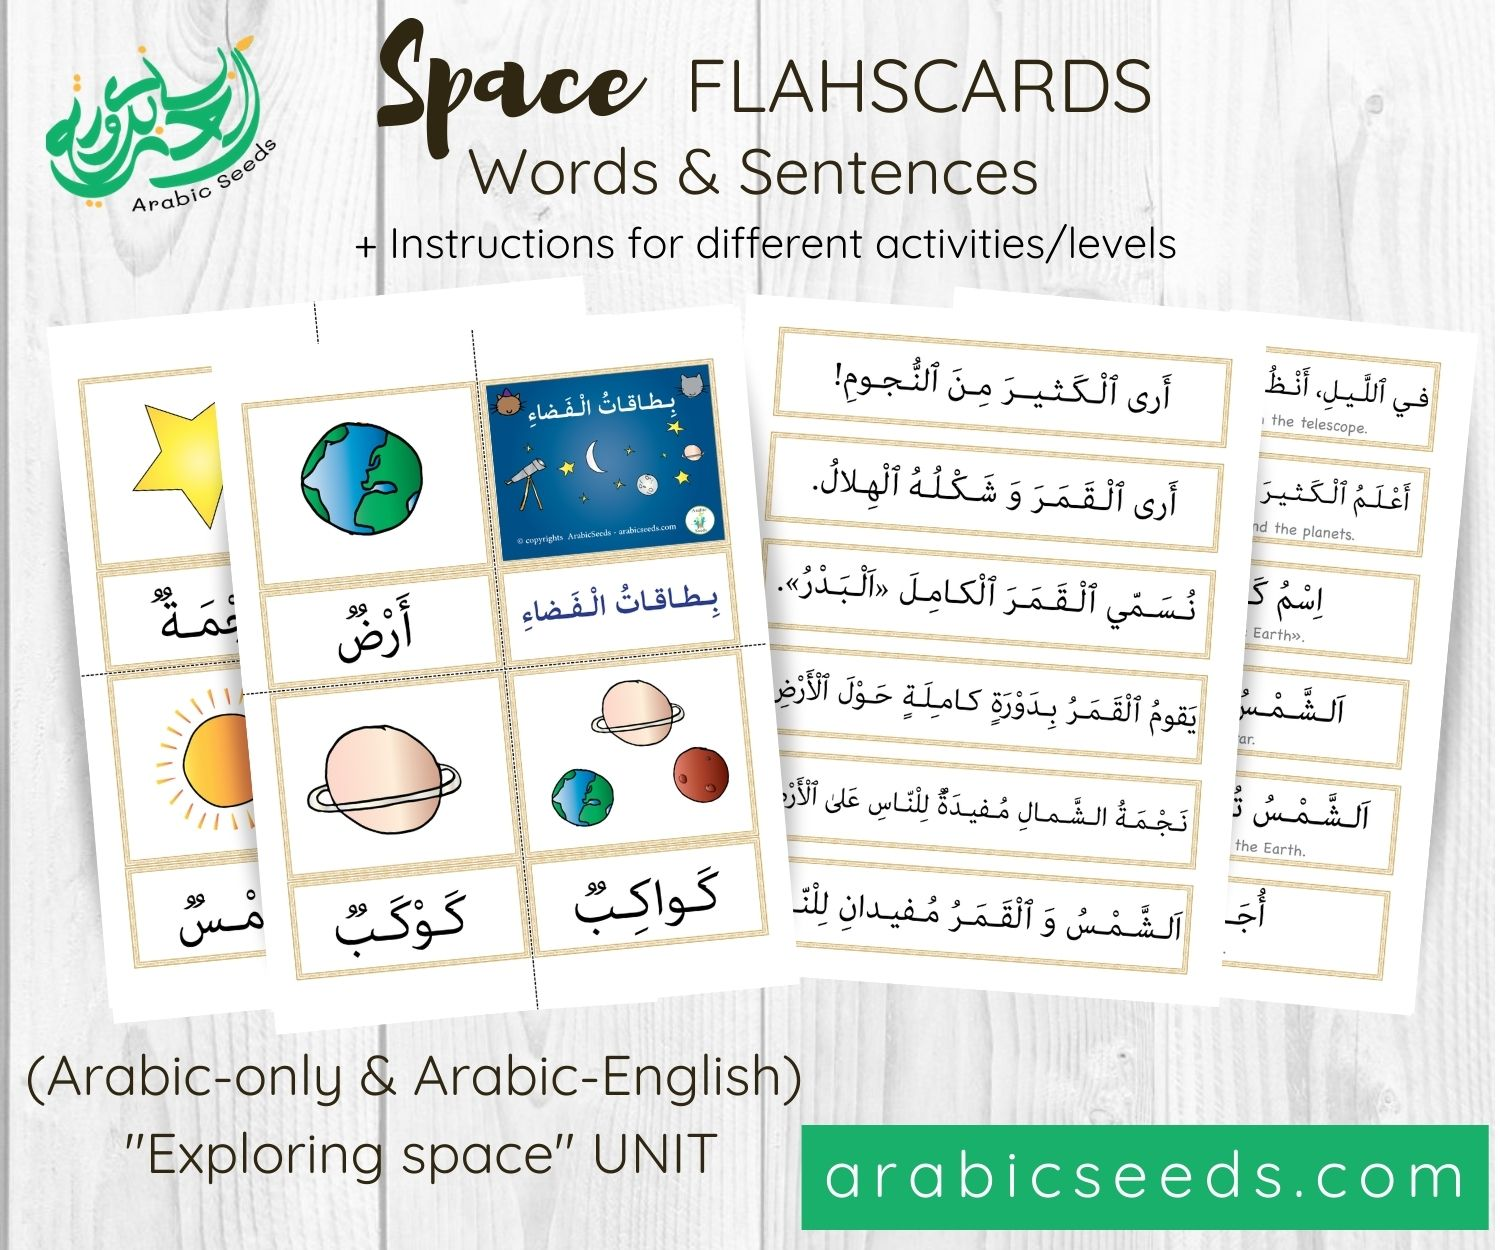 Arabic Space Flashcards words and sentences printable - Arabic Seeds